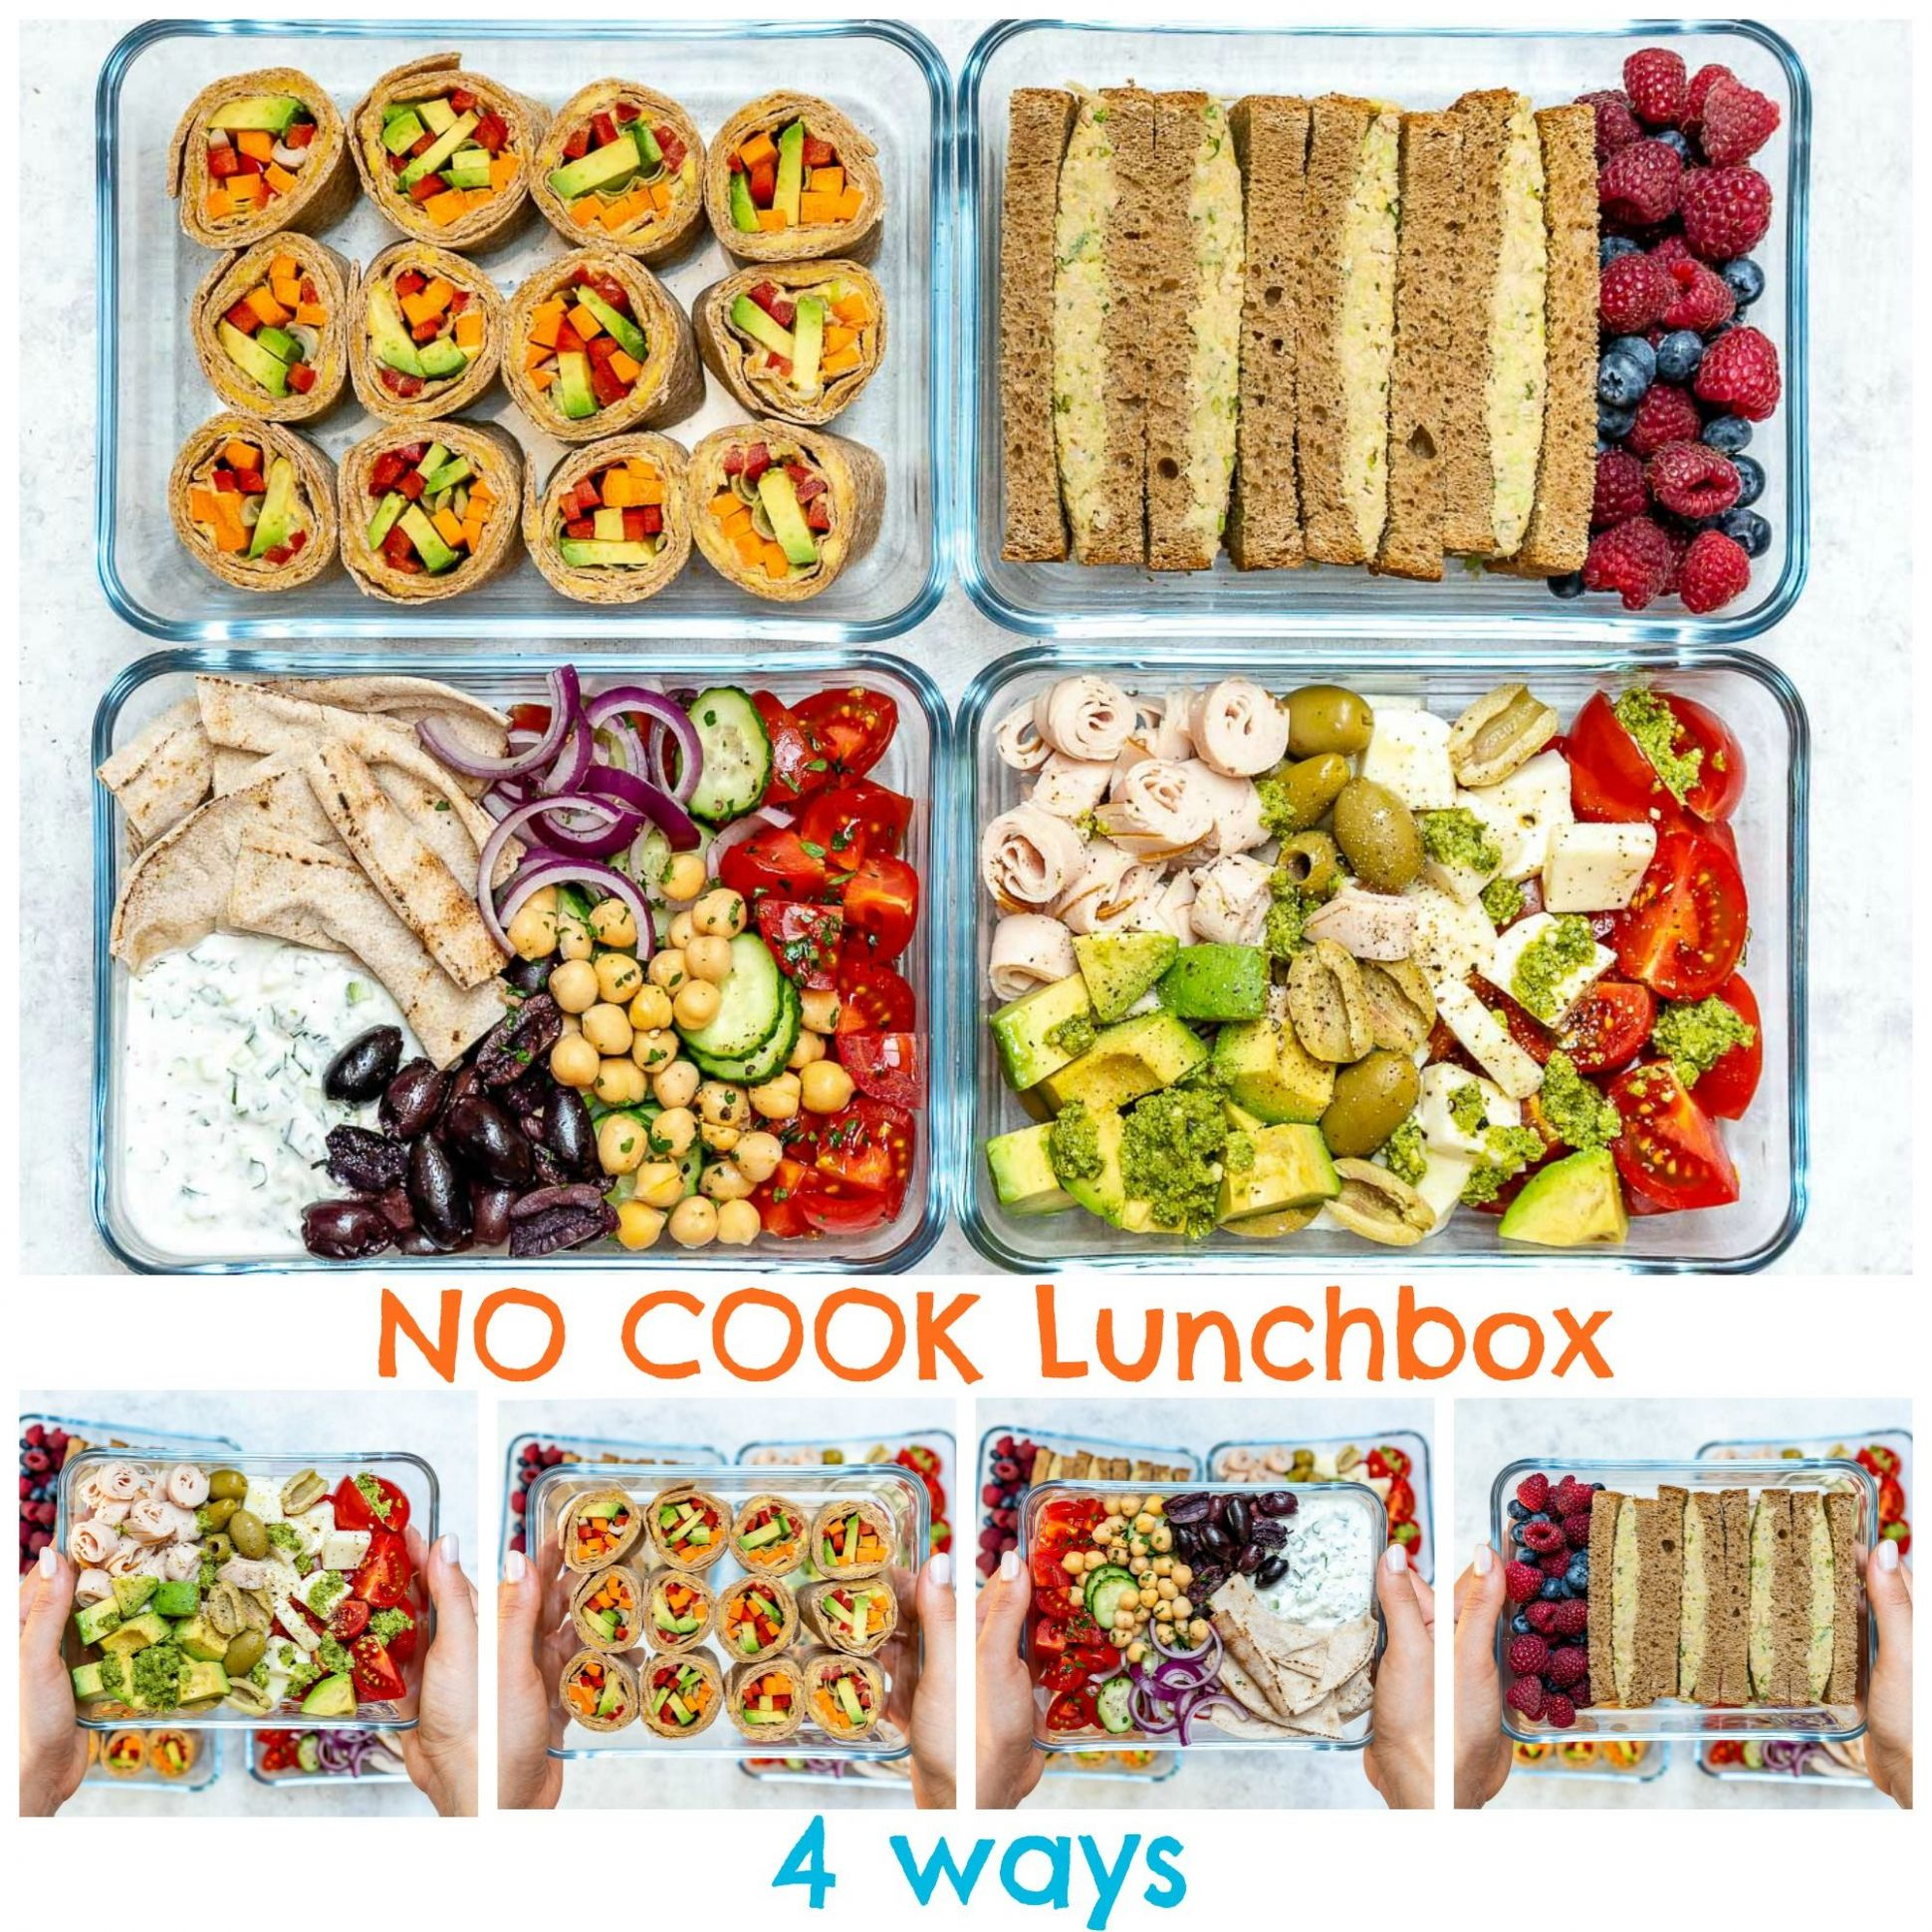 No-Cook Cold Lunch Boxes 12 Ways for Clean Eating - Recipes No Cooking